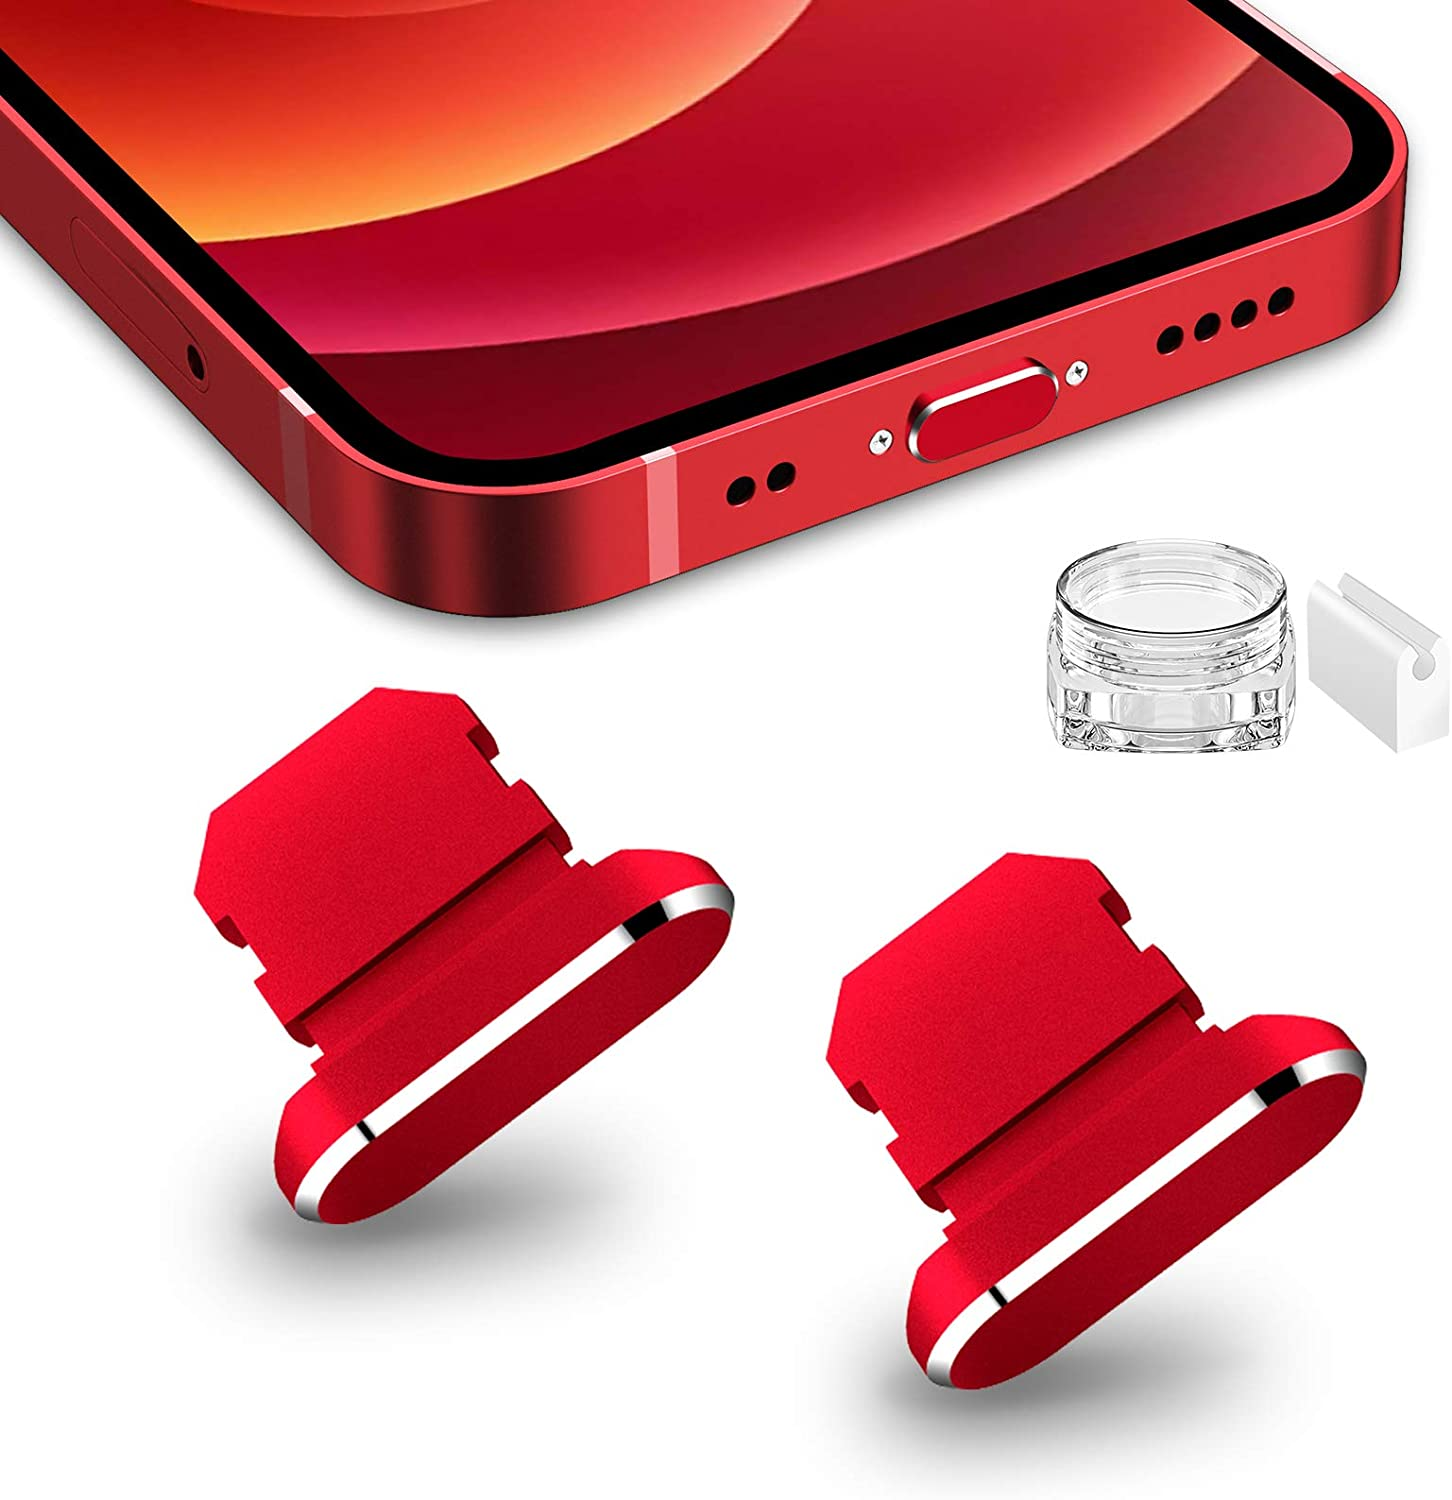 TITACUTE 2 Pack Anti Dust Plugs for iPhone 11/12 Pro Max Dust Cover 8 Pin Dust Plug with Mini Storage Box iPhone Charging Port Plugs Compatible with iPhone 12 Mini/ 11 Pro/XS/XR/ 8 Plus Red